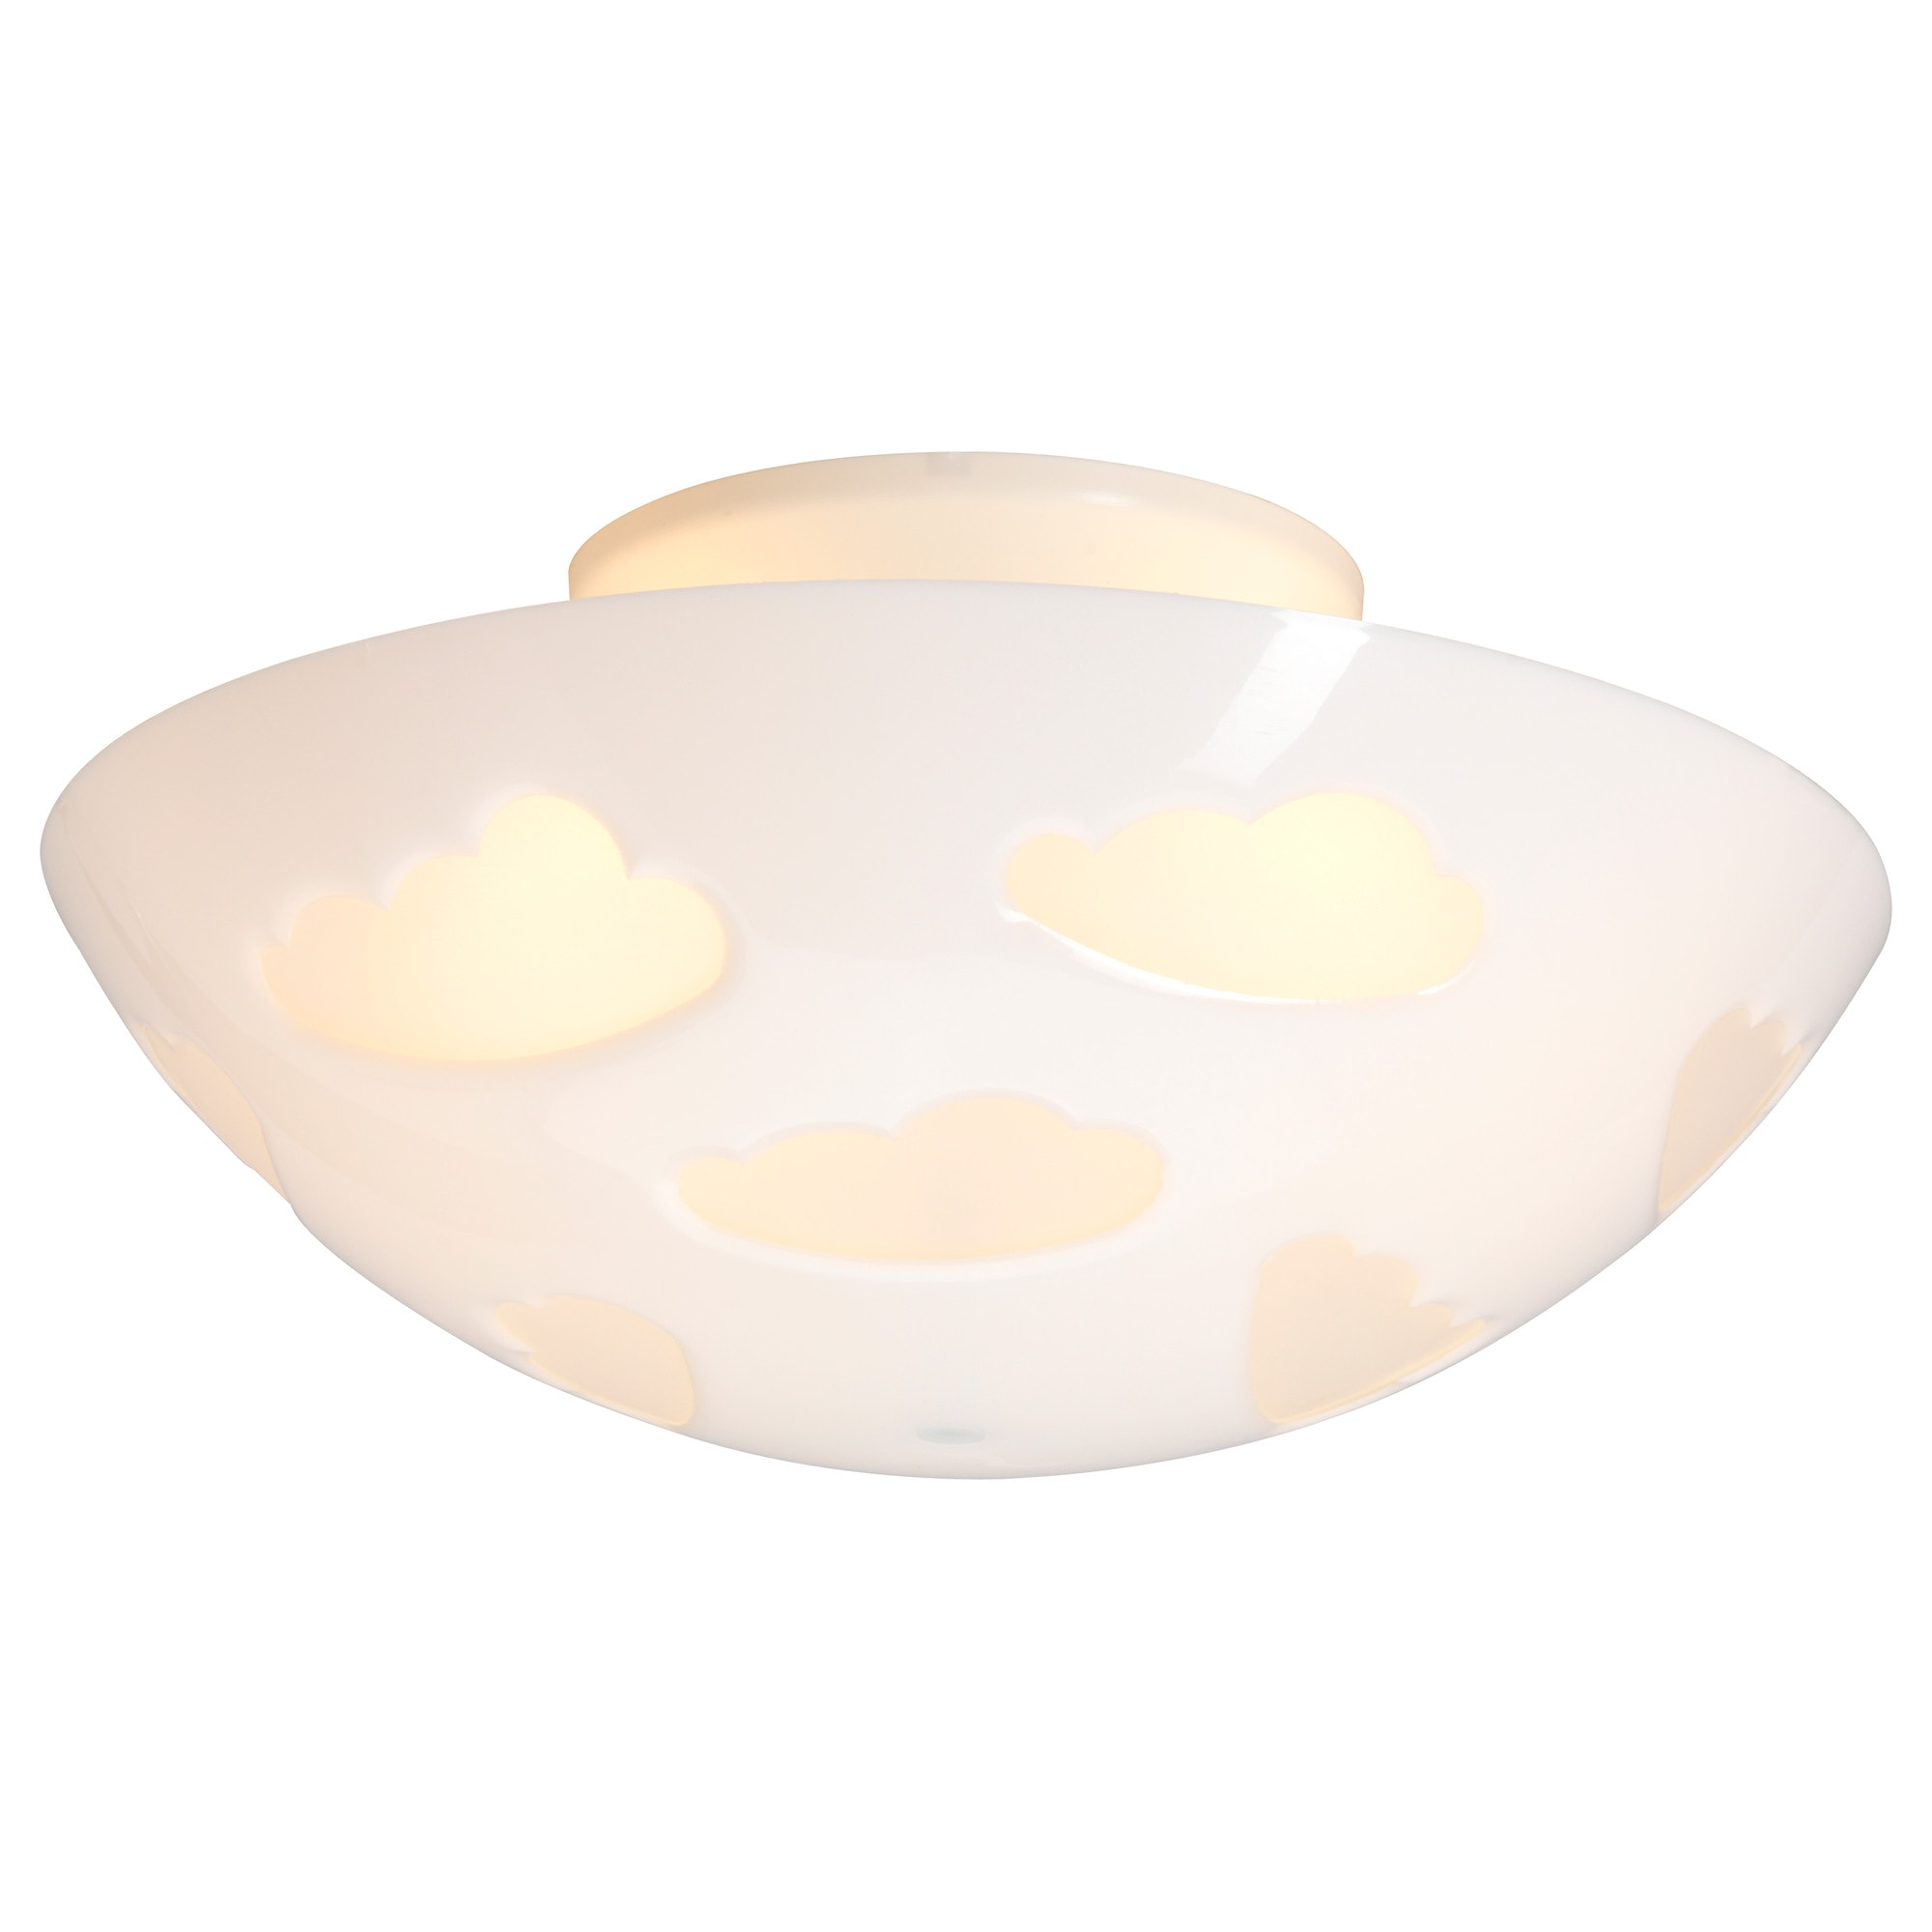 Kids bedroom ceiling lights - Kids Bedroom Ceiling Lights 25